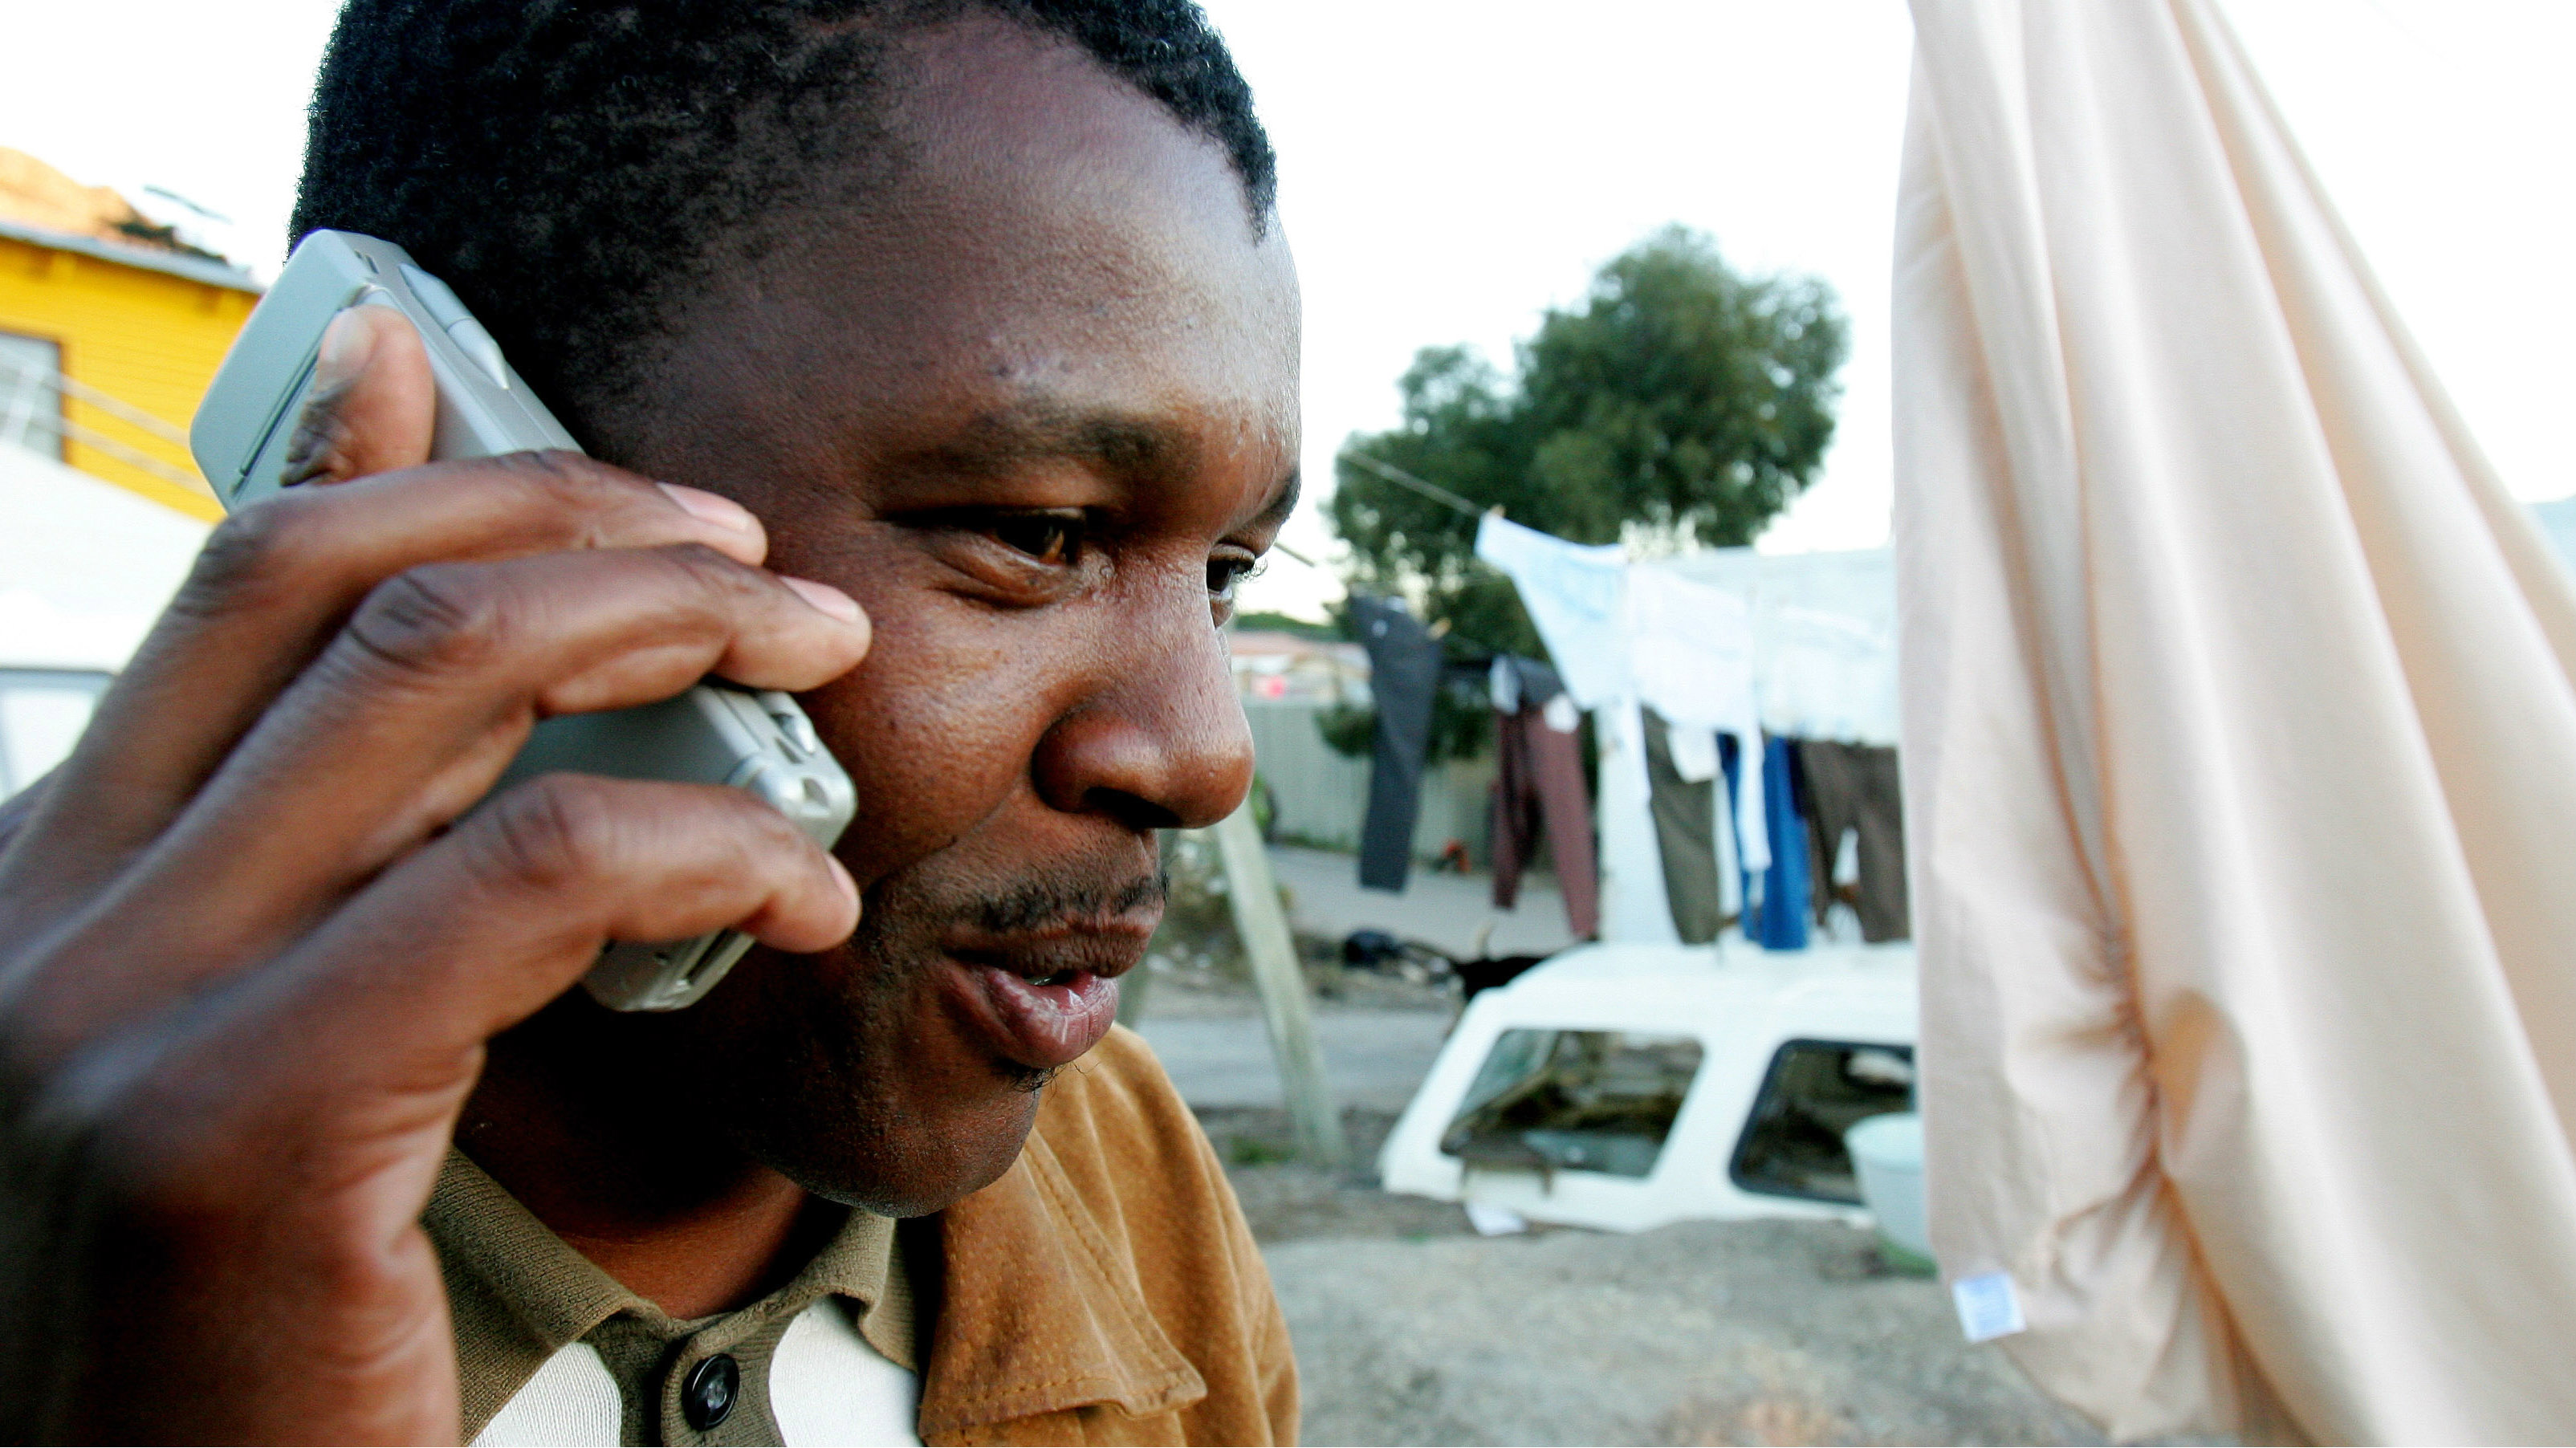 A township resident chats on his mobile phone in Hout Bay near Cape Town in this June 22, 2006 file photo. Mobile operators are scrambling to gain a foothold in Africa, where cell phone penetration hovers at just 15 percent and growth is ripe for those with a stomach for risk. But a decade after mobile technology took off on the continent, most affluent urbanites already have phones, making poor rural areas the new battleground for operators seeking growth. Picture taken June 22, 2006. To match feature TELECOMS AFRICA RURAL REUTERS/Mike Hutchings (SOUTH AFRICA)